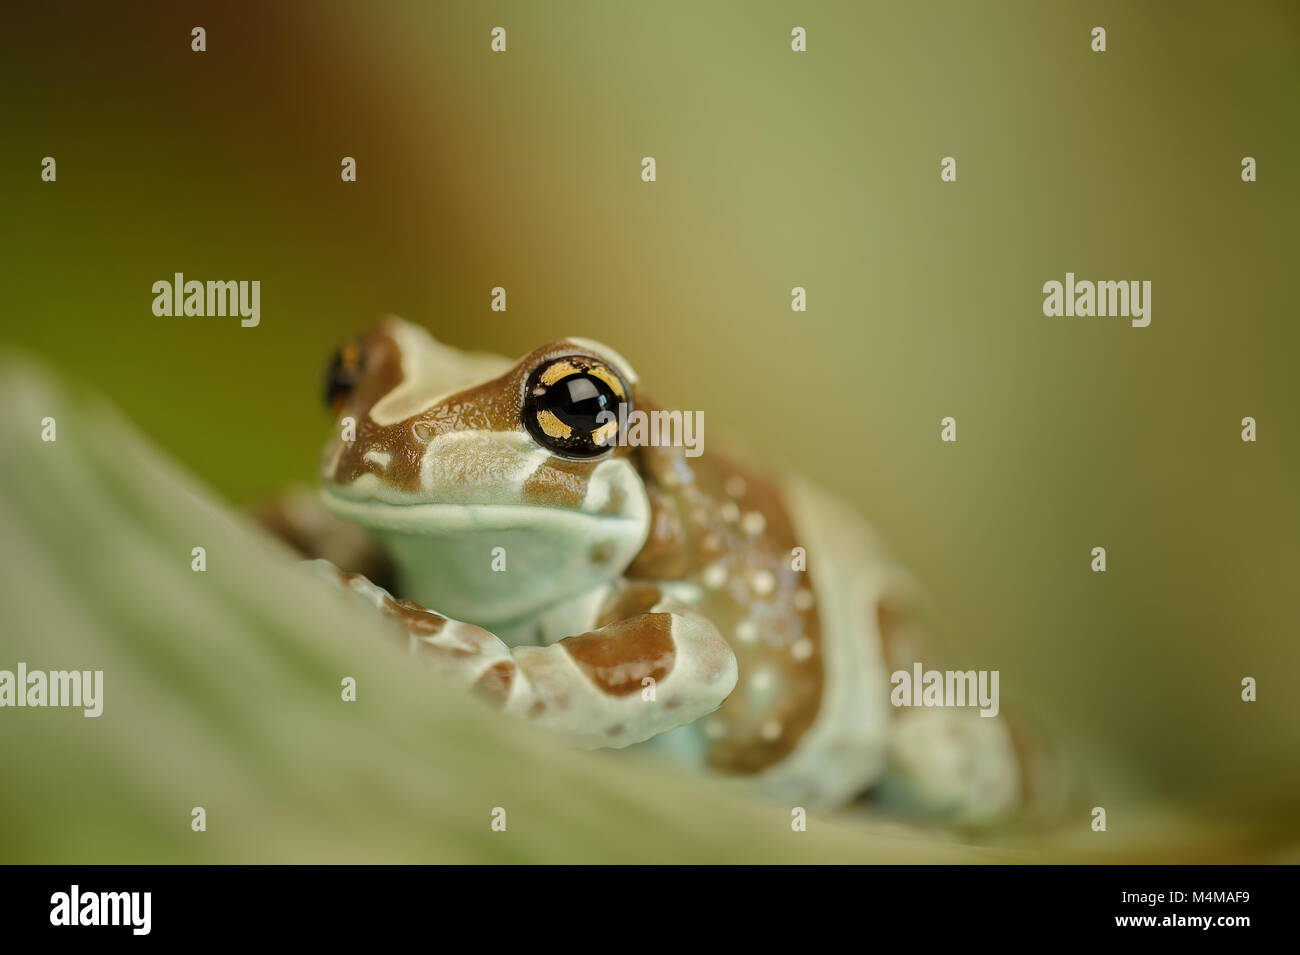 Amazon milk frog on leaf - Stock Image